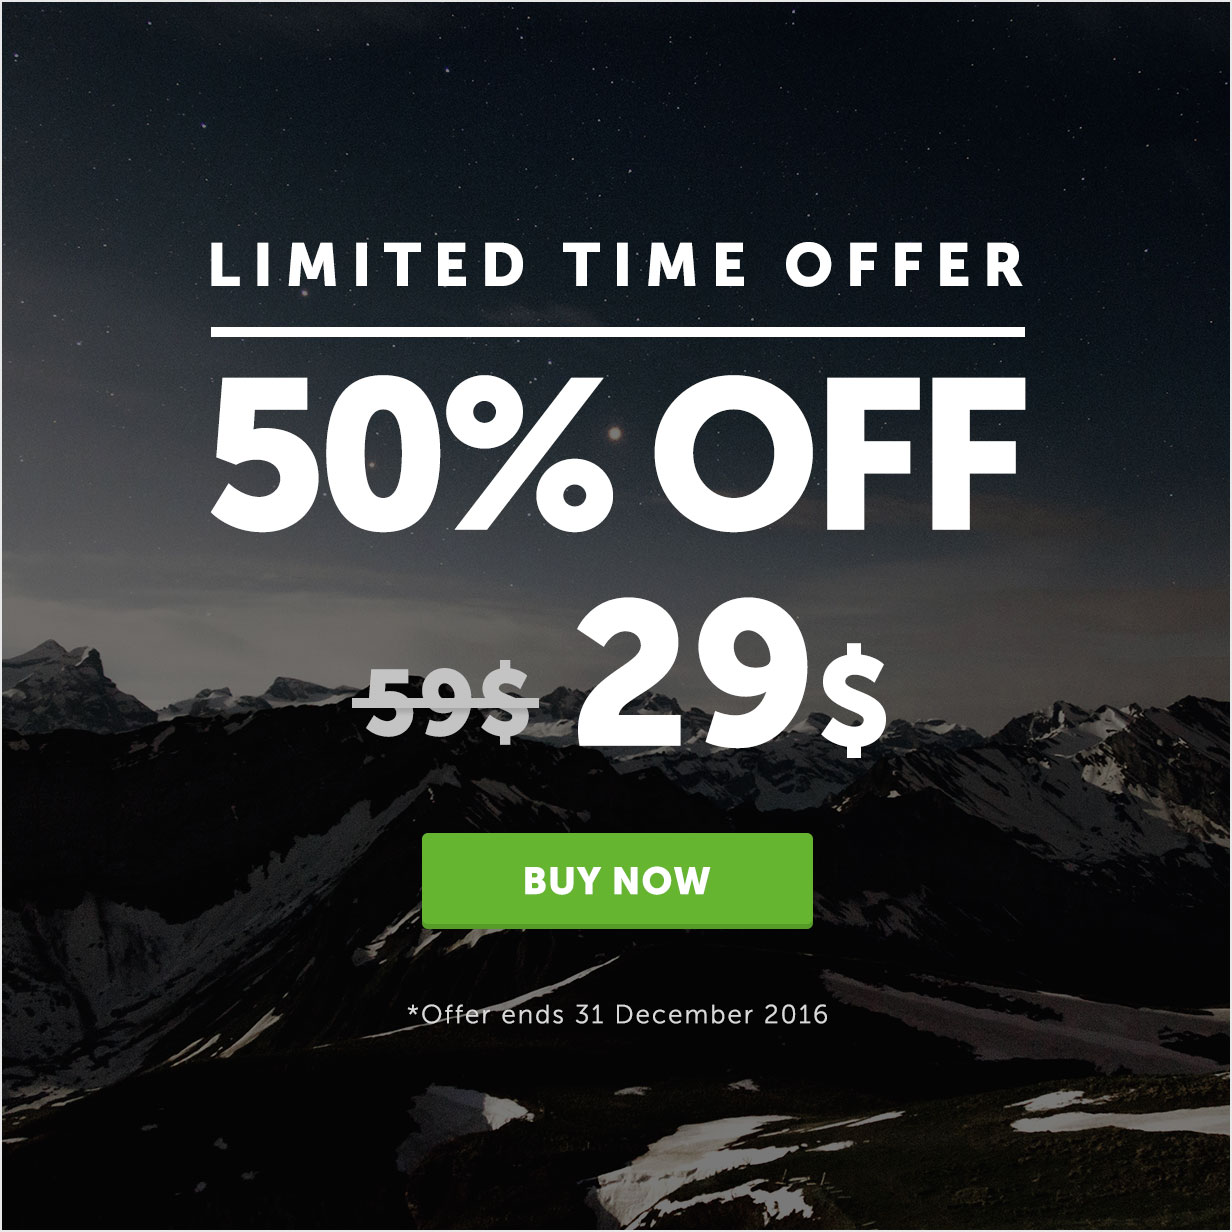 50% OFF - Limited time